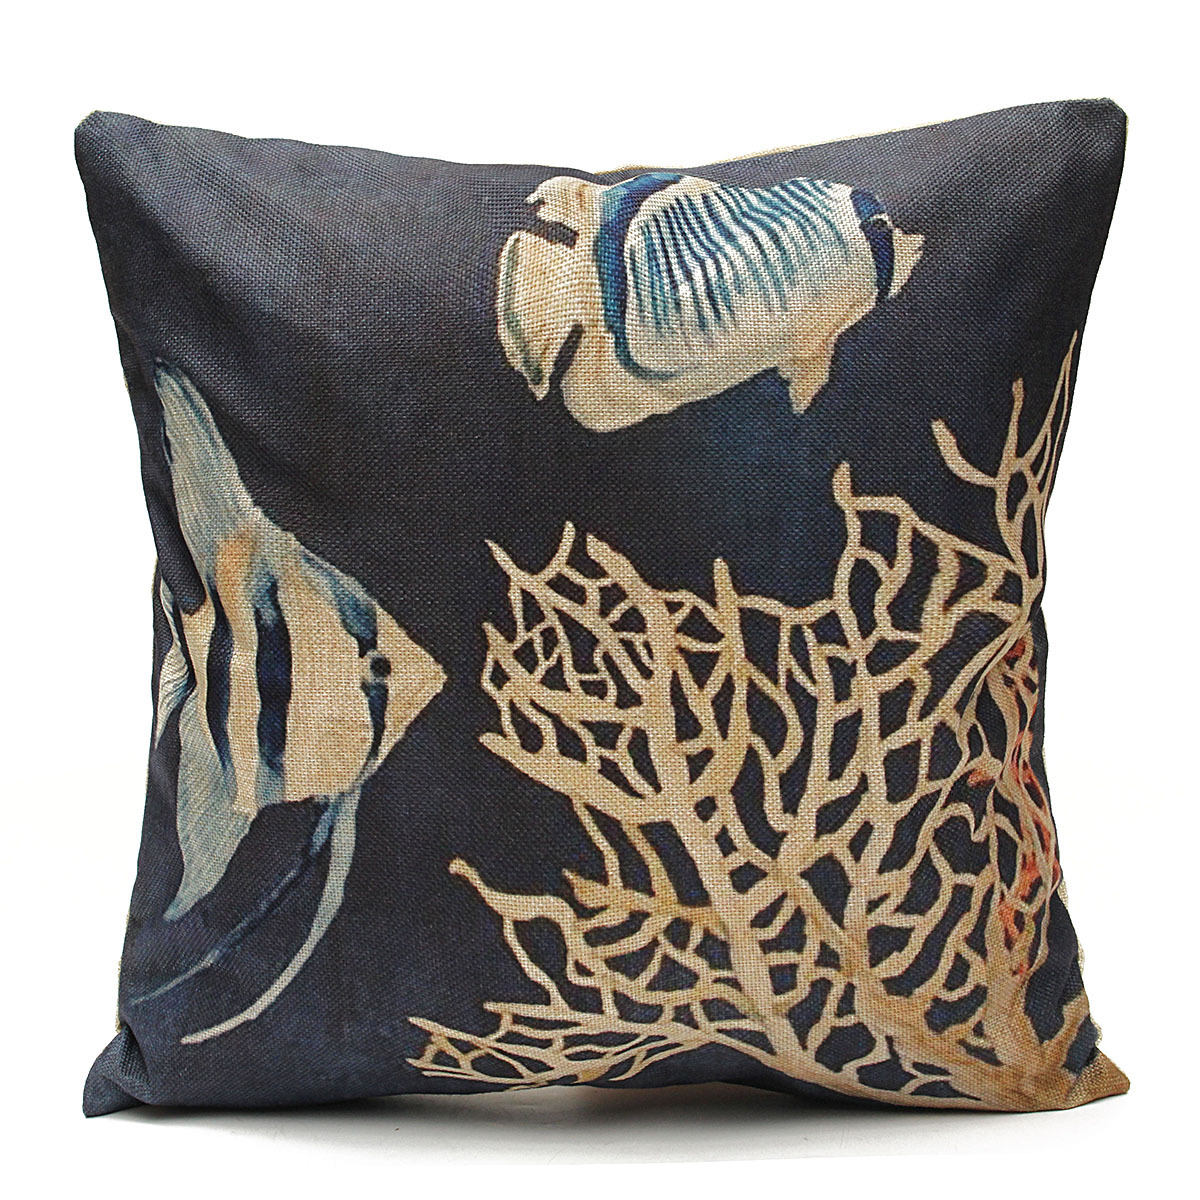 Nautical Coastal Throw Pillows : Ocean Coastal Beach Nautical Throw Pillow Case Cushion Cover Sofa Home Decor eBay